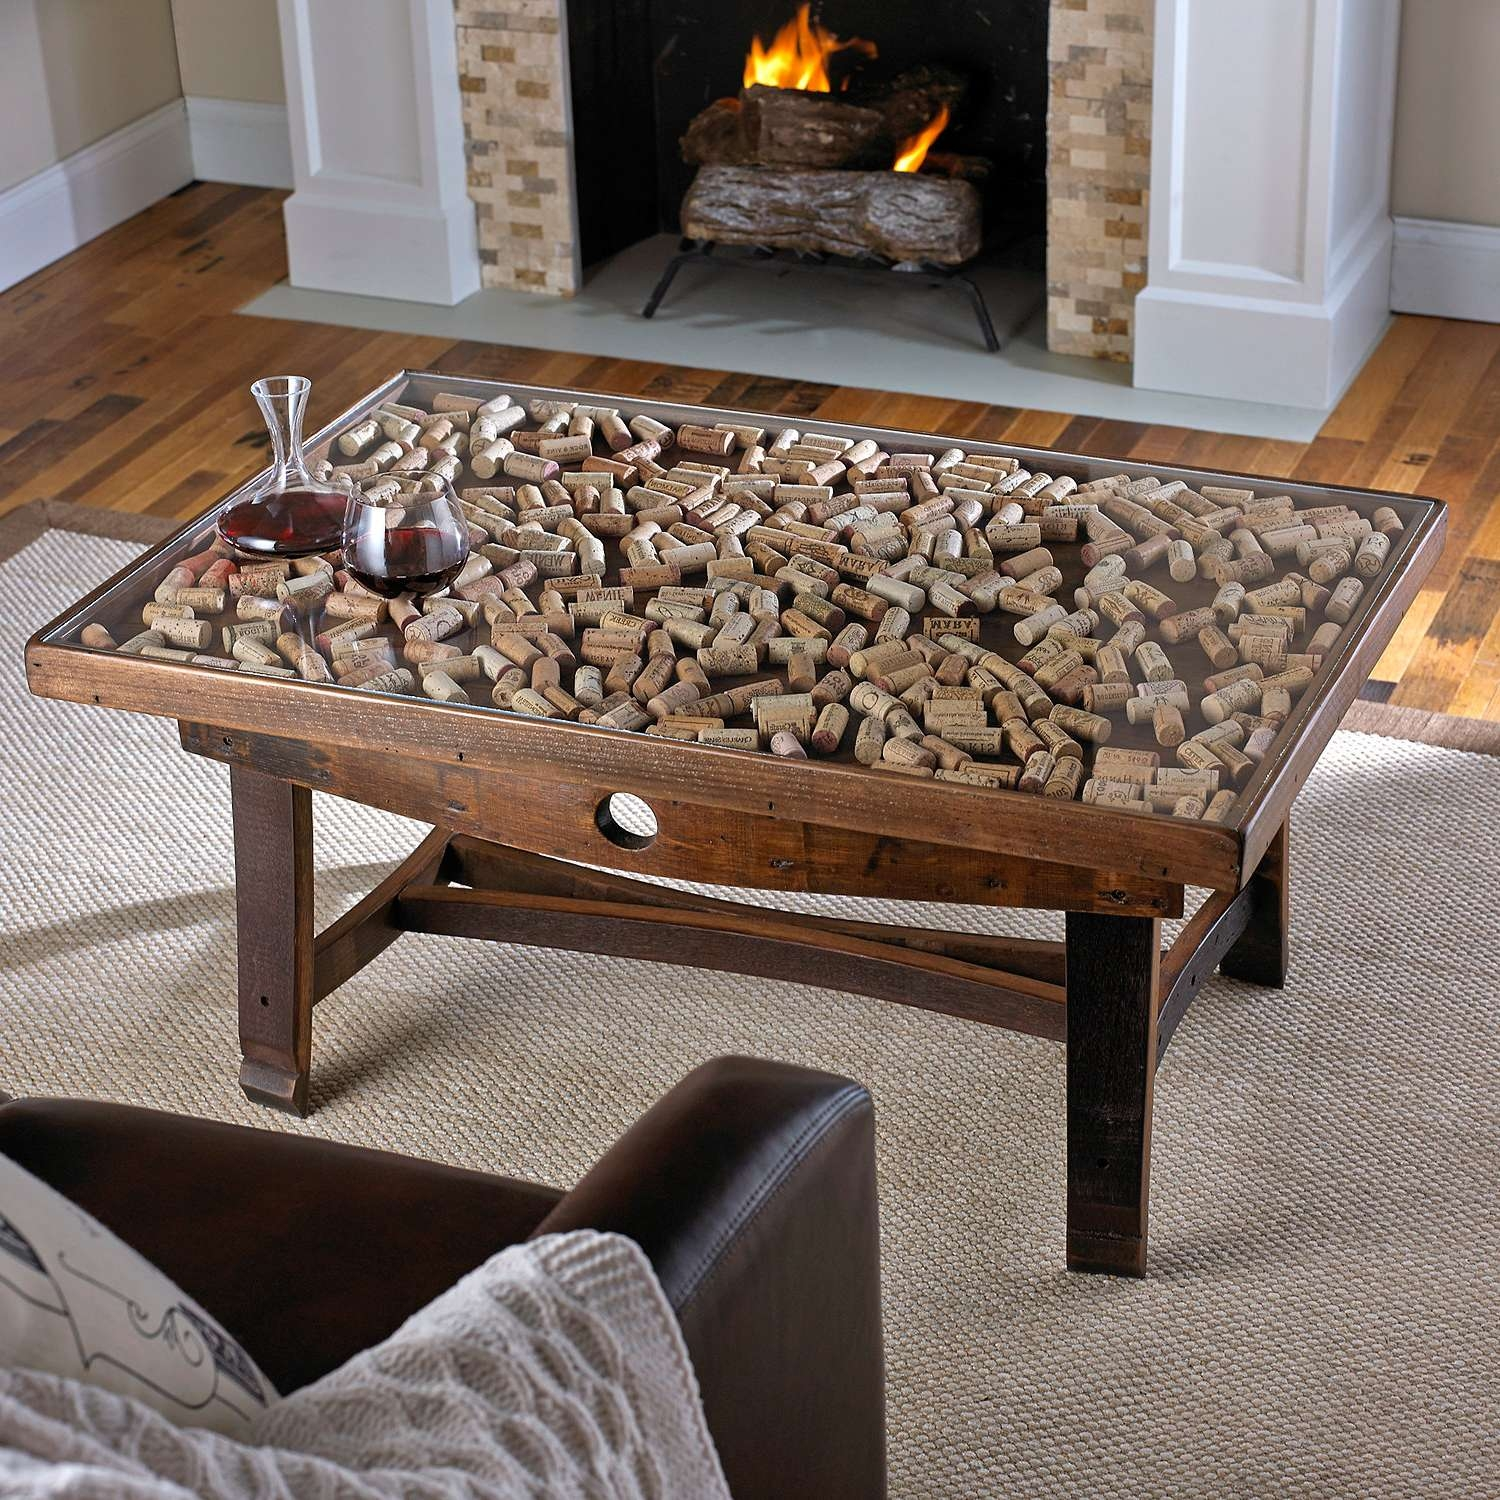 Displaying Gallery of Glass Top Display Coffee Tables With Drawers